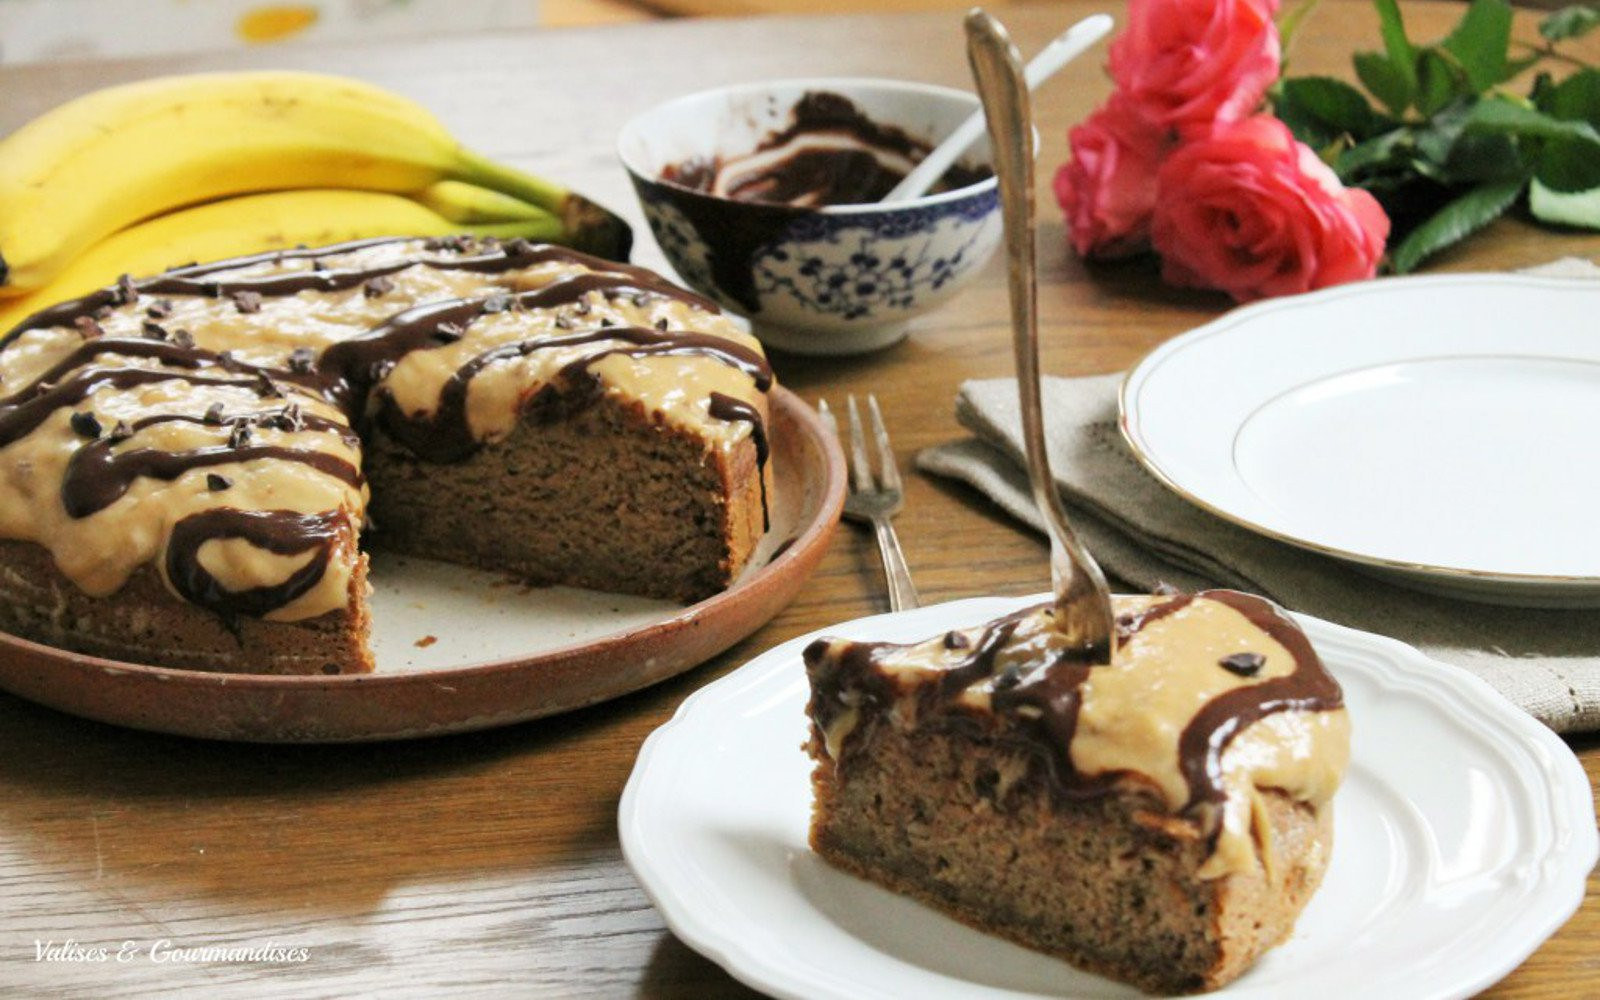 Healthy Banana Cake Recipe  Healthy Banana Cake With Peanut Butter Frosting and Maca